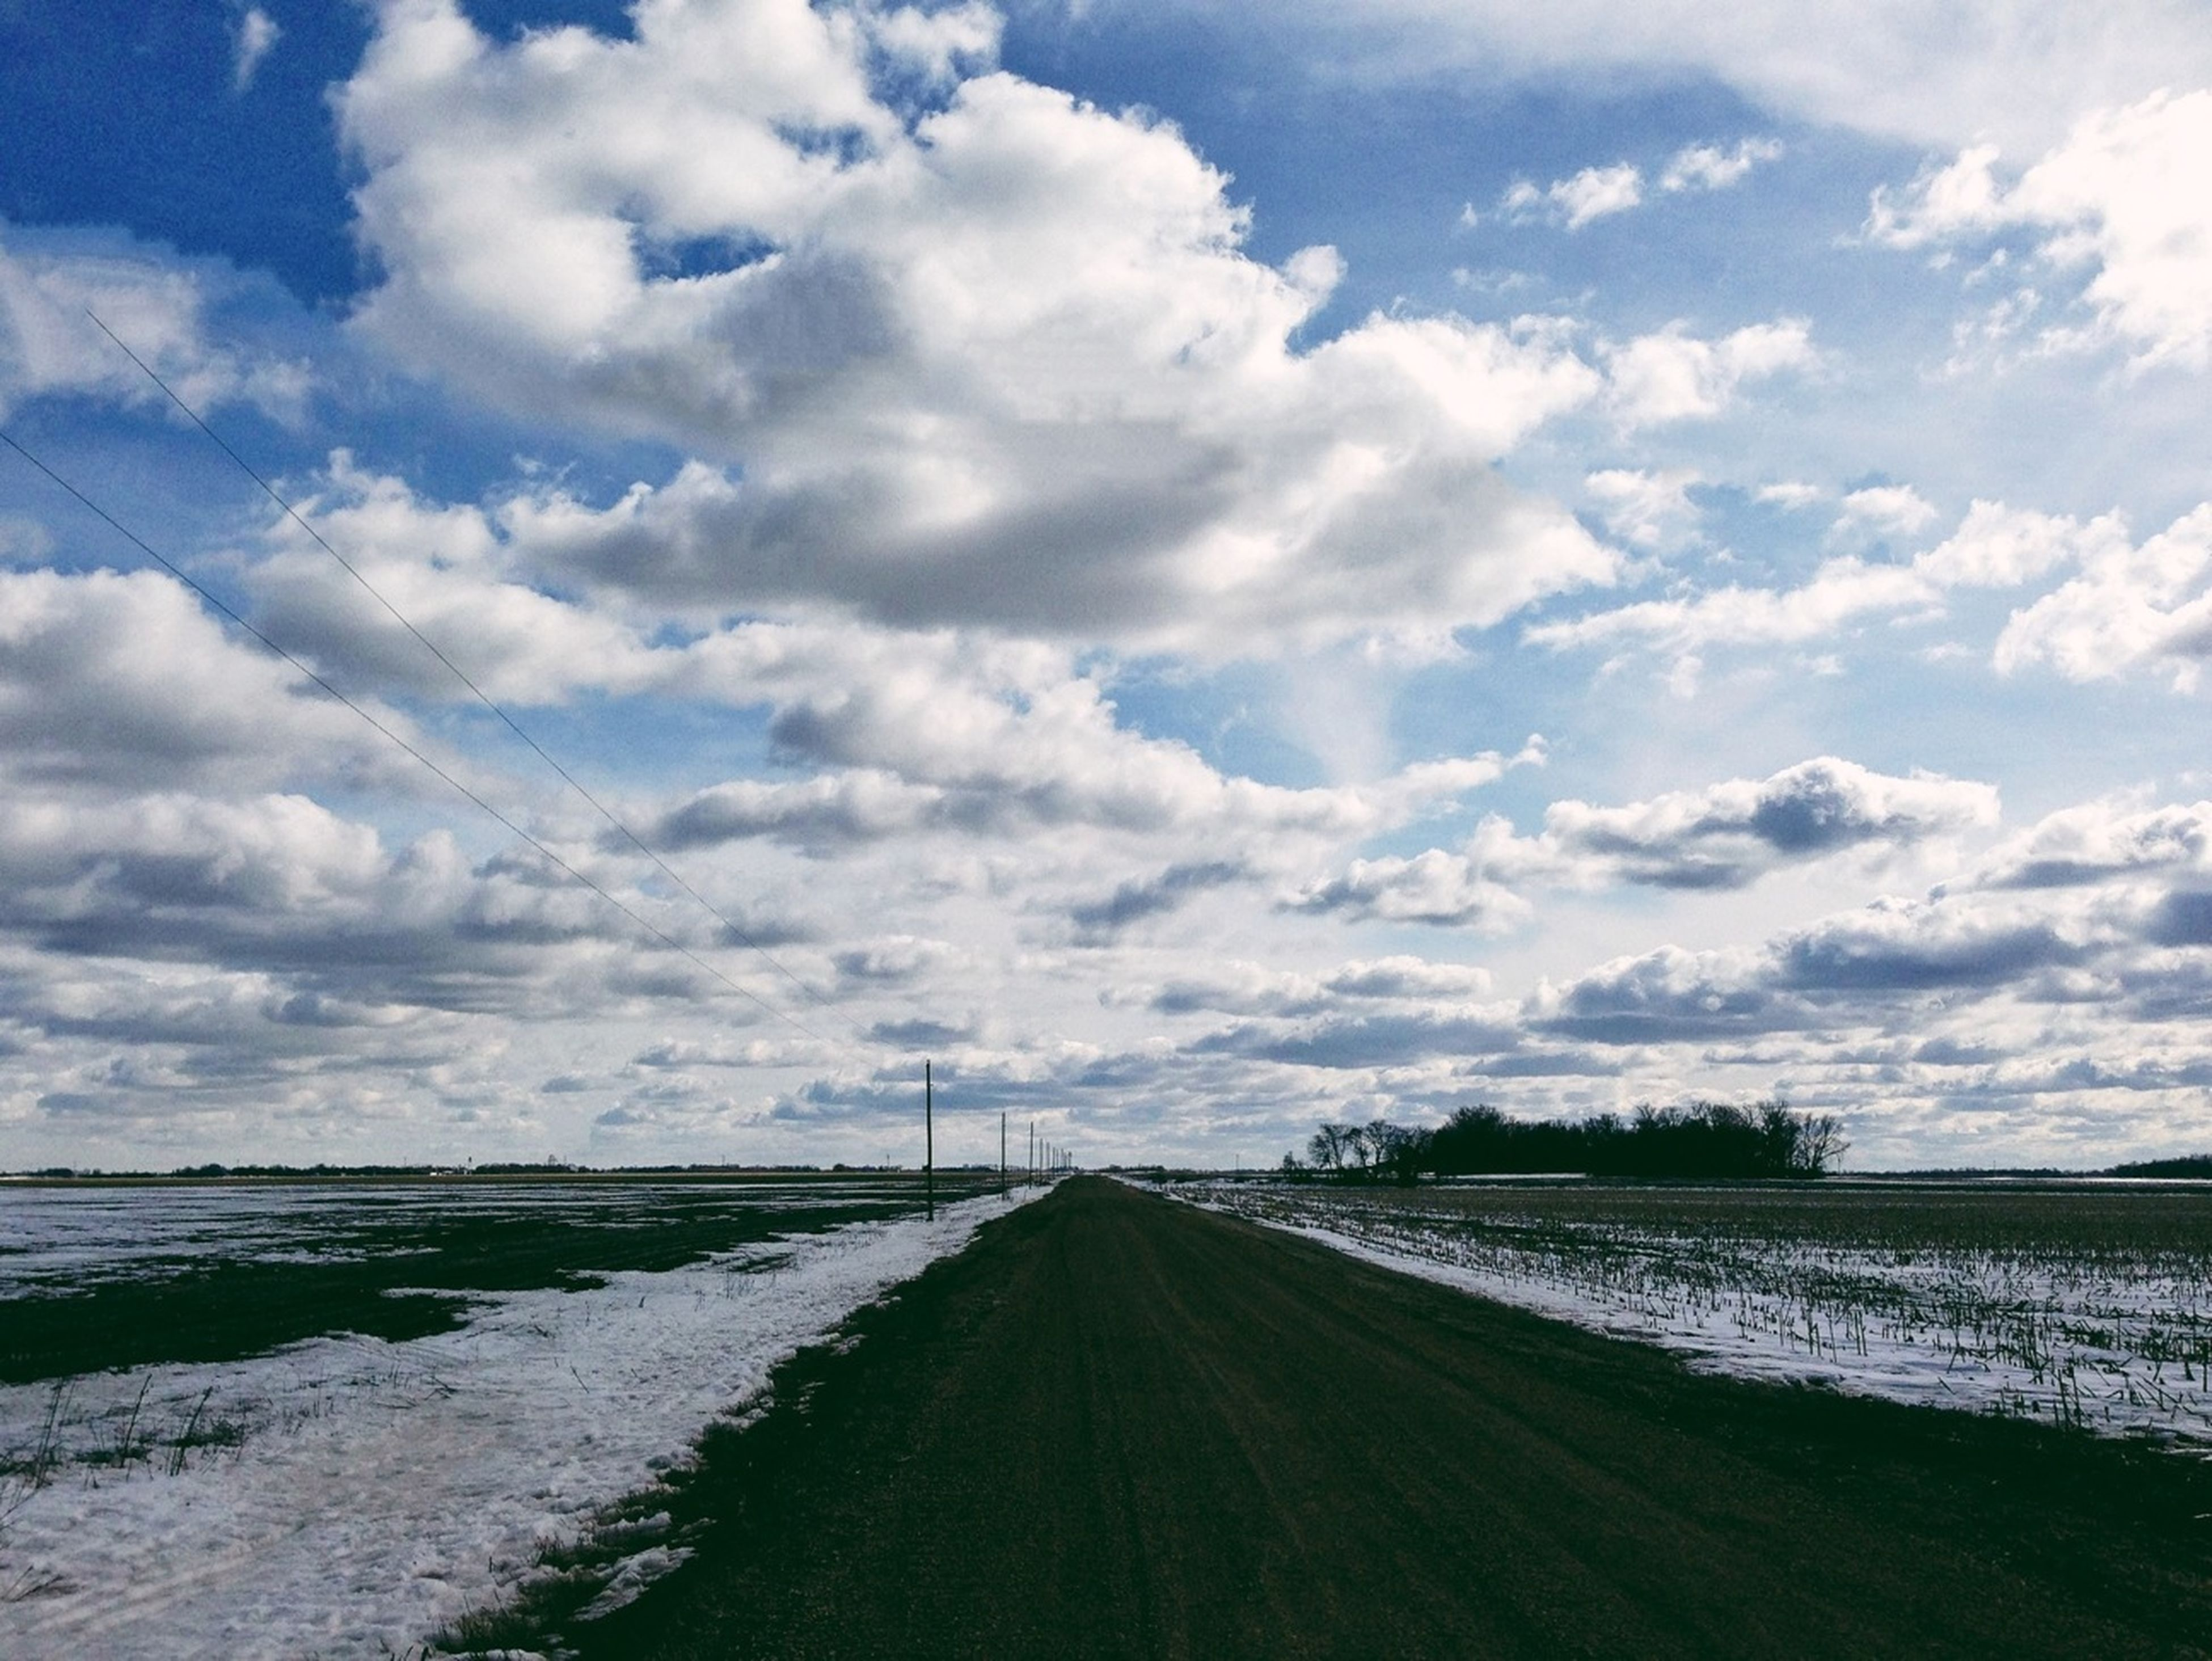 sky, water, cloud - sky, the way forward, tranquil scene, tranquility, cloudy, cloud, sea, scenics, nature, beauty in nature, diminishing perspective, road, landscape, vanishing point, transportation, day, no people, outdoors